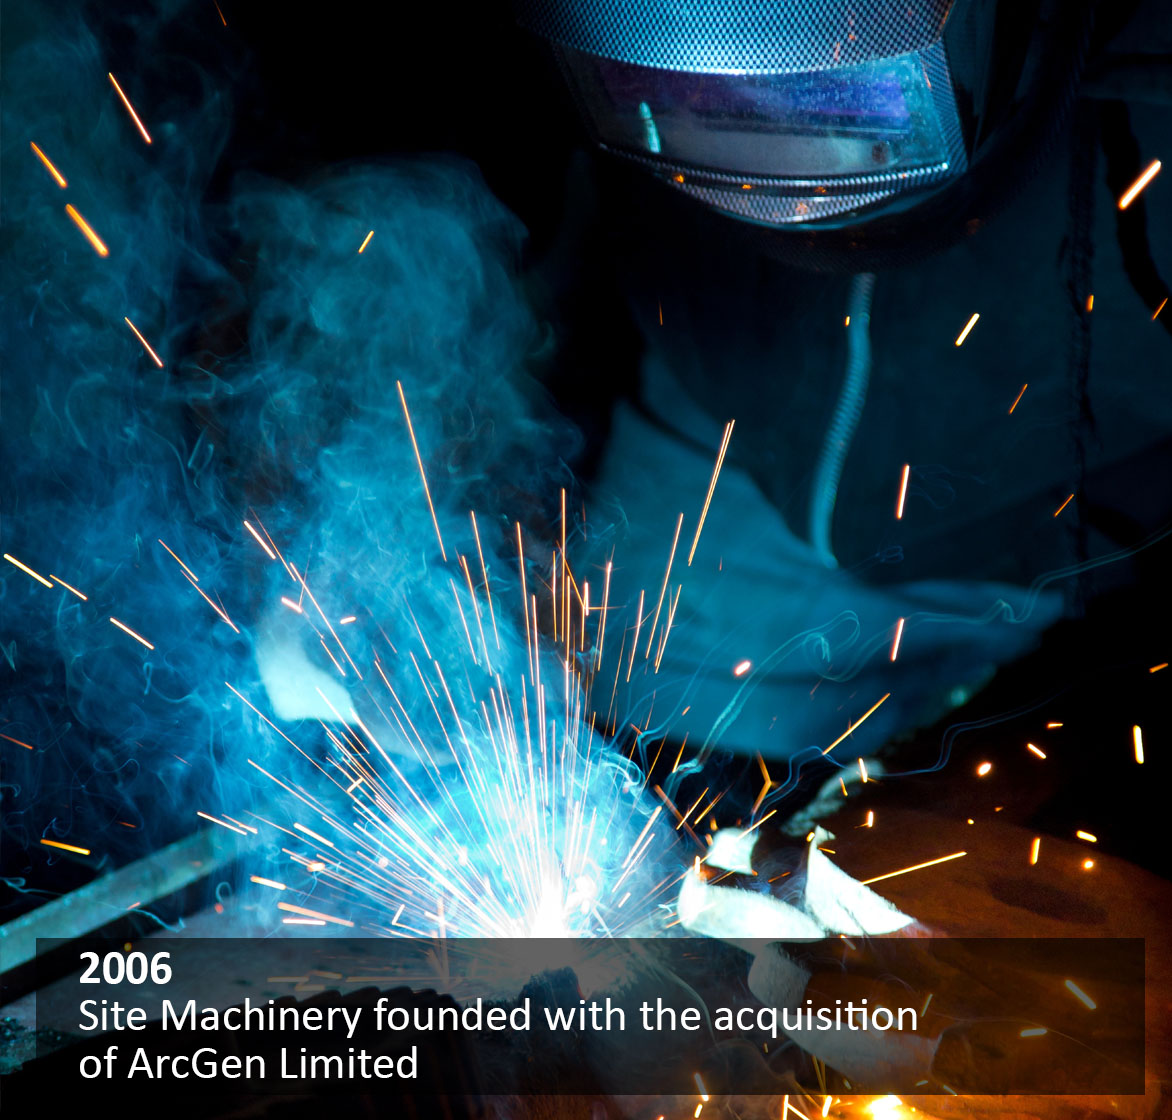 Site Machinery founded with the acquisition of ArcGen Limited